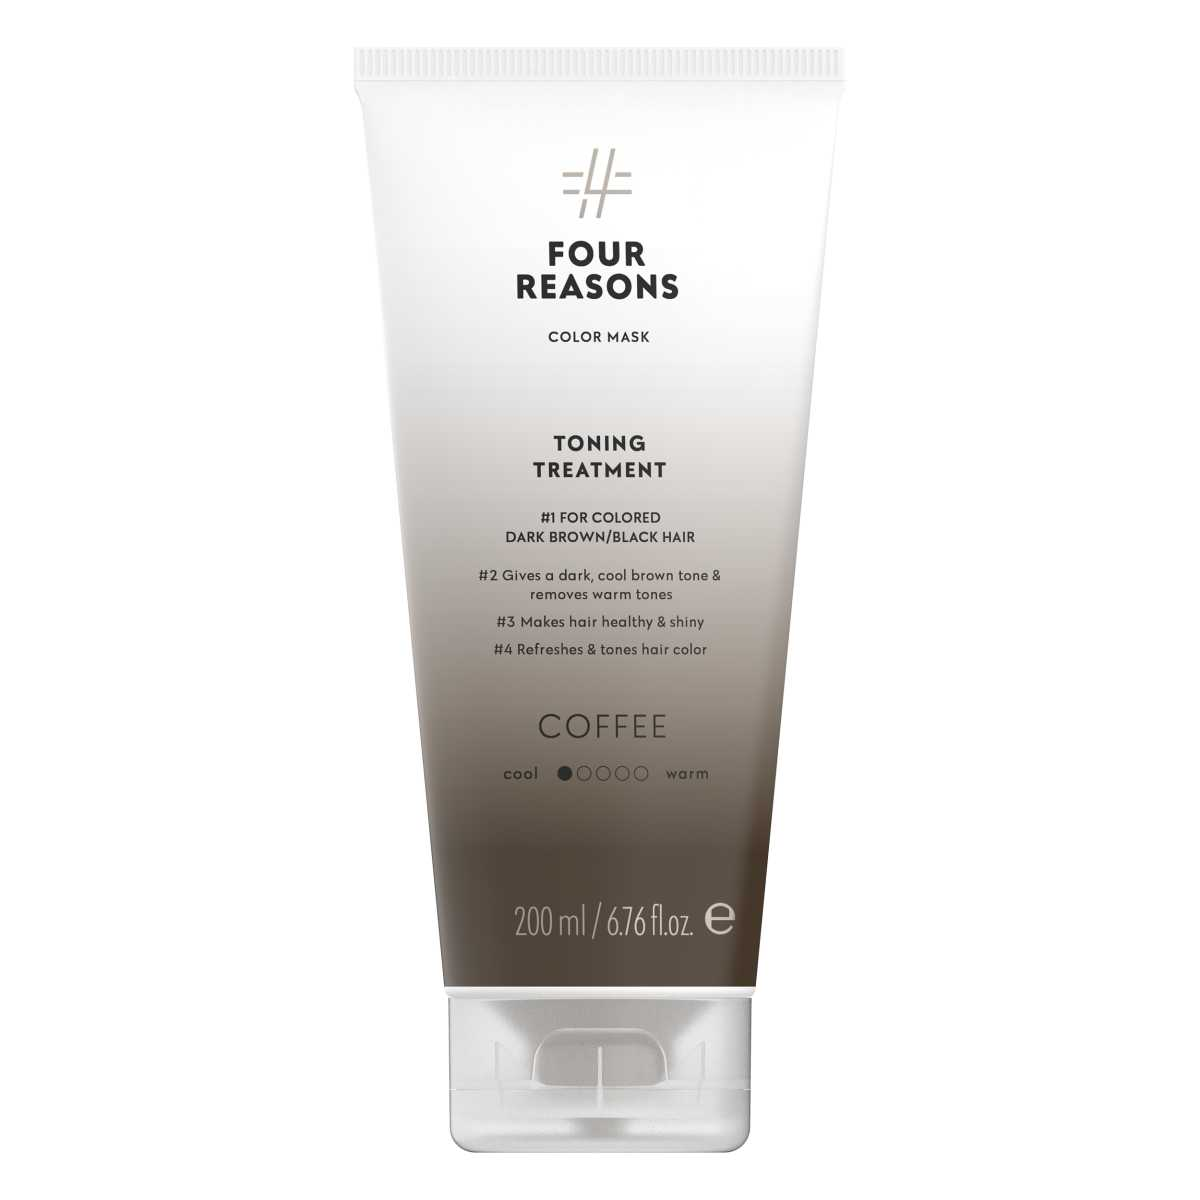 Four-Reasons-Color-Mask Coffee